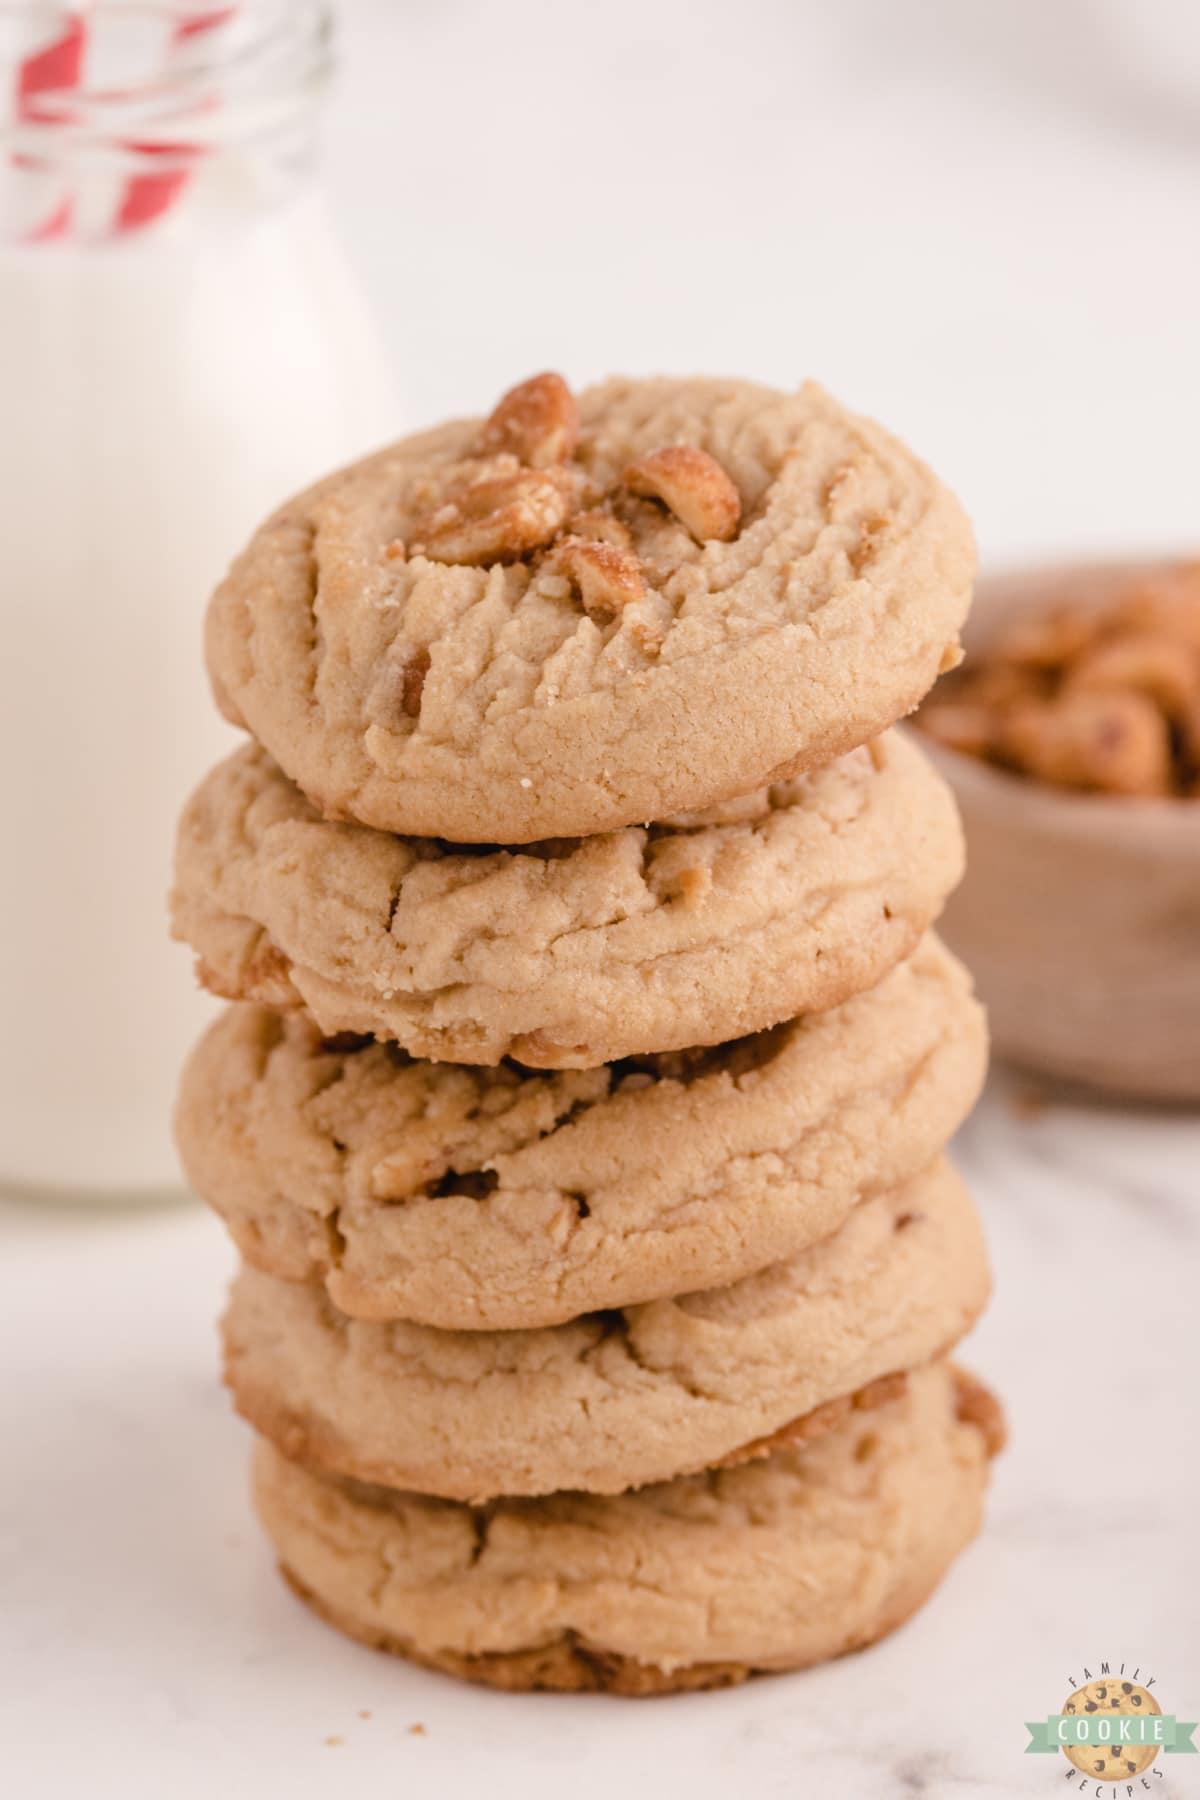 Honey Roasted Peanut Butter Cookies made with peanut butter and lots of honey roasted peanuts. Soft, chewy and delicious peanut butter cookie recipe with tons of peanut flavor!